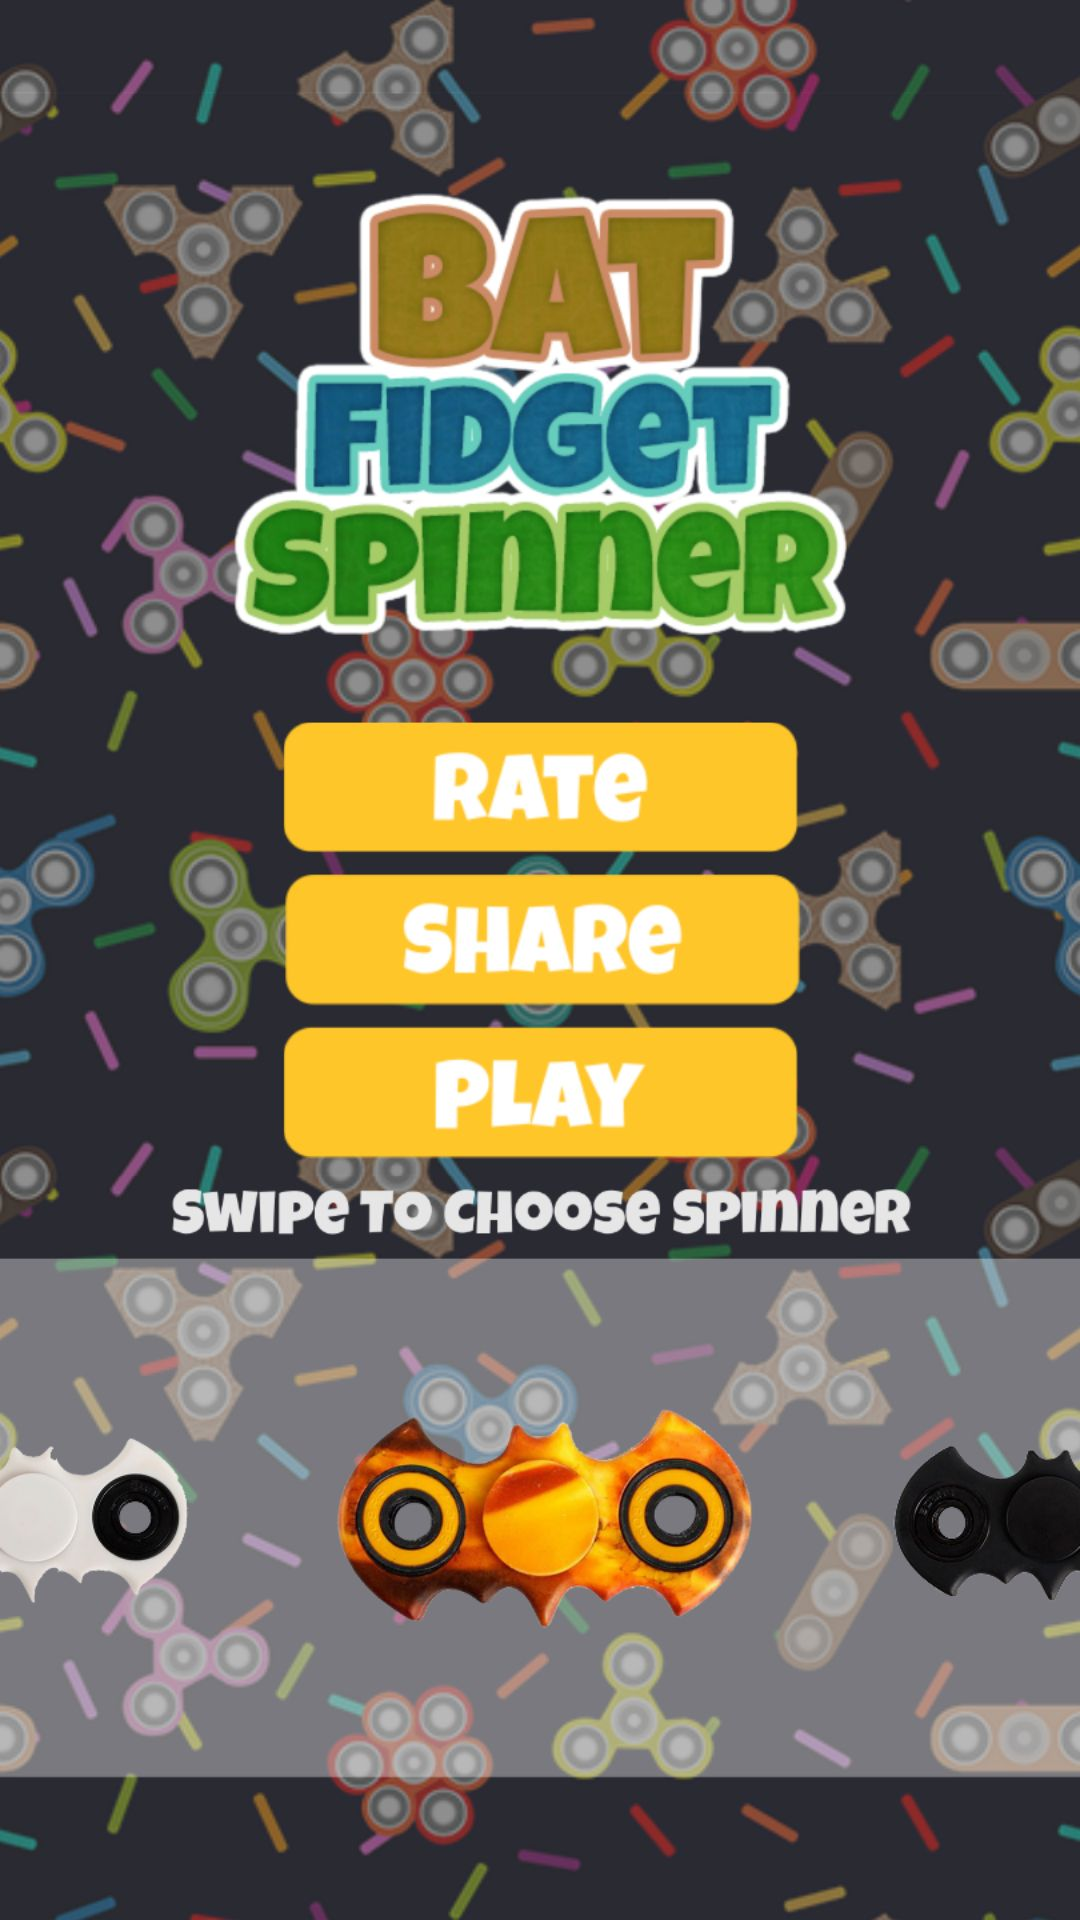 Bat Fidget Spinner - Buildbox Game Template Screenshot 2